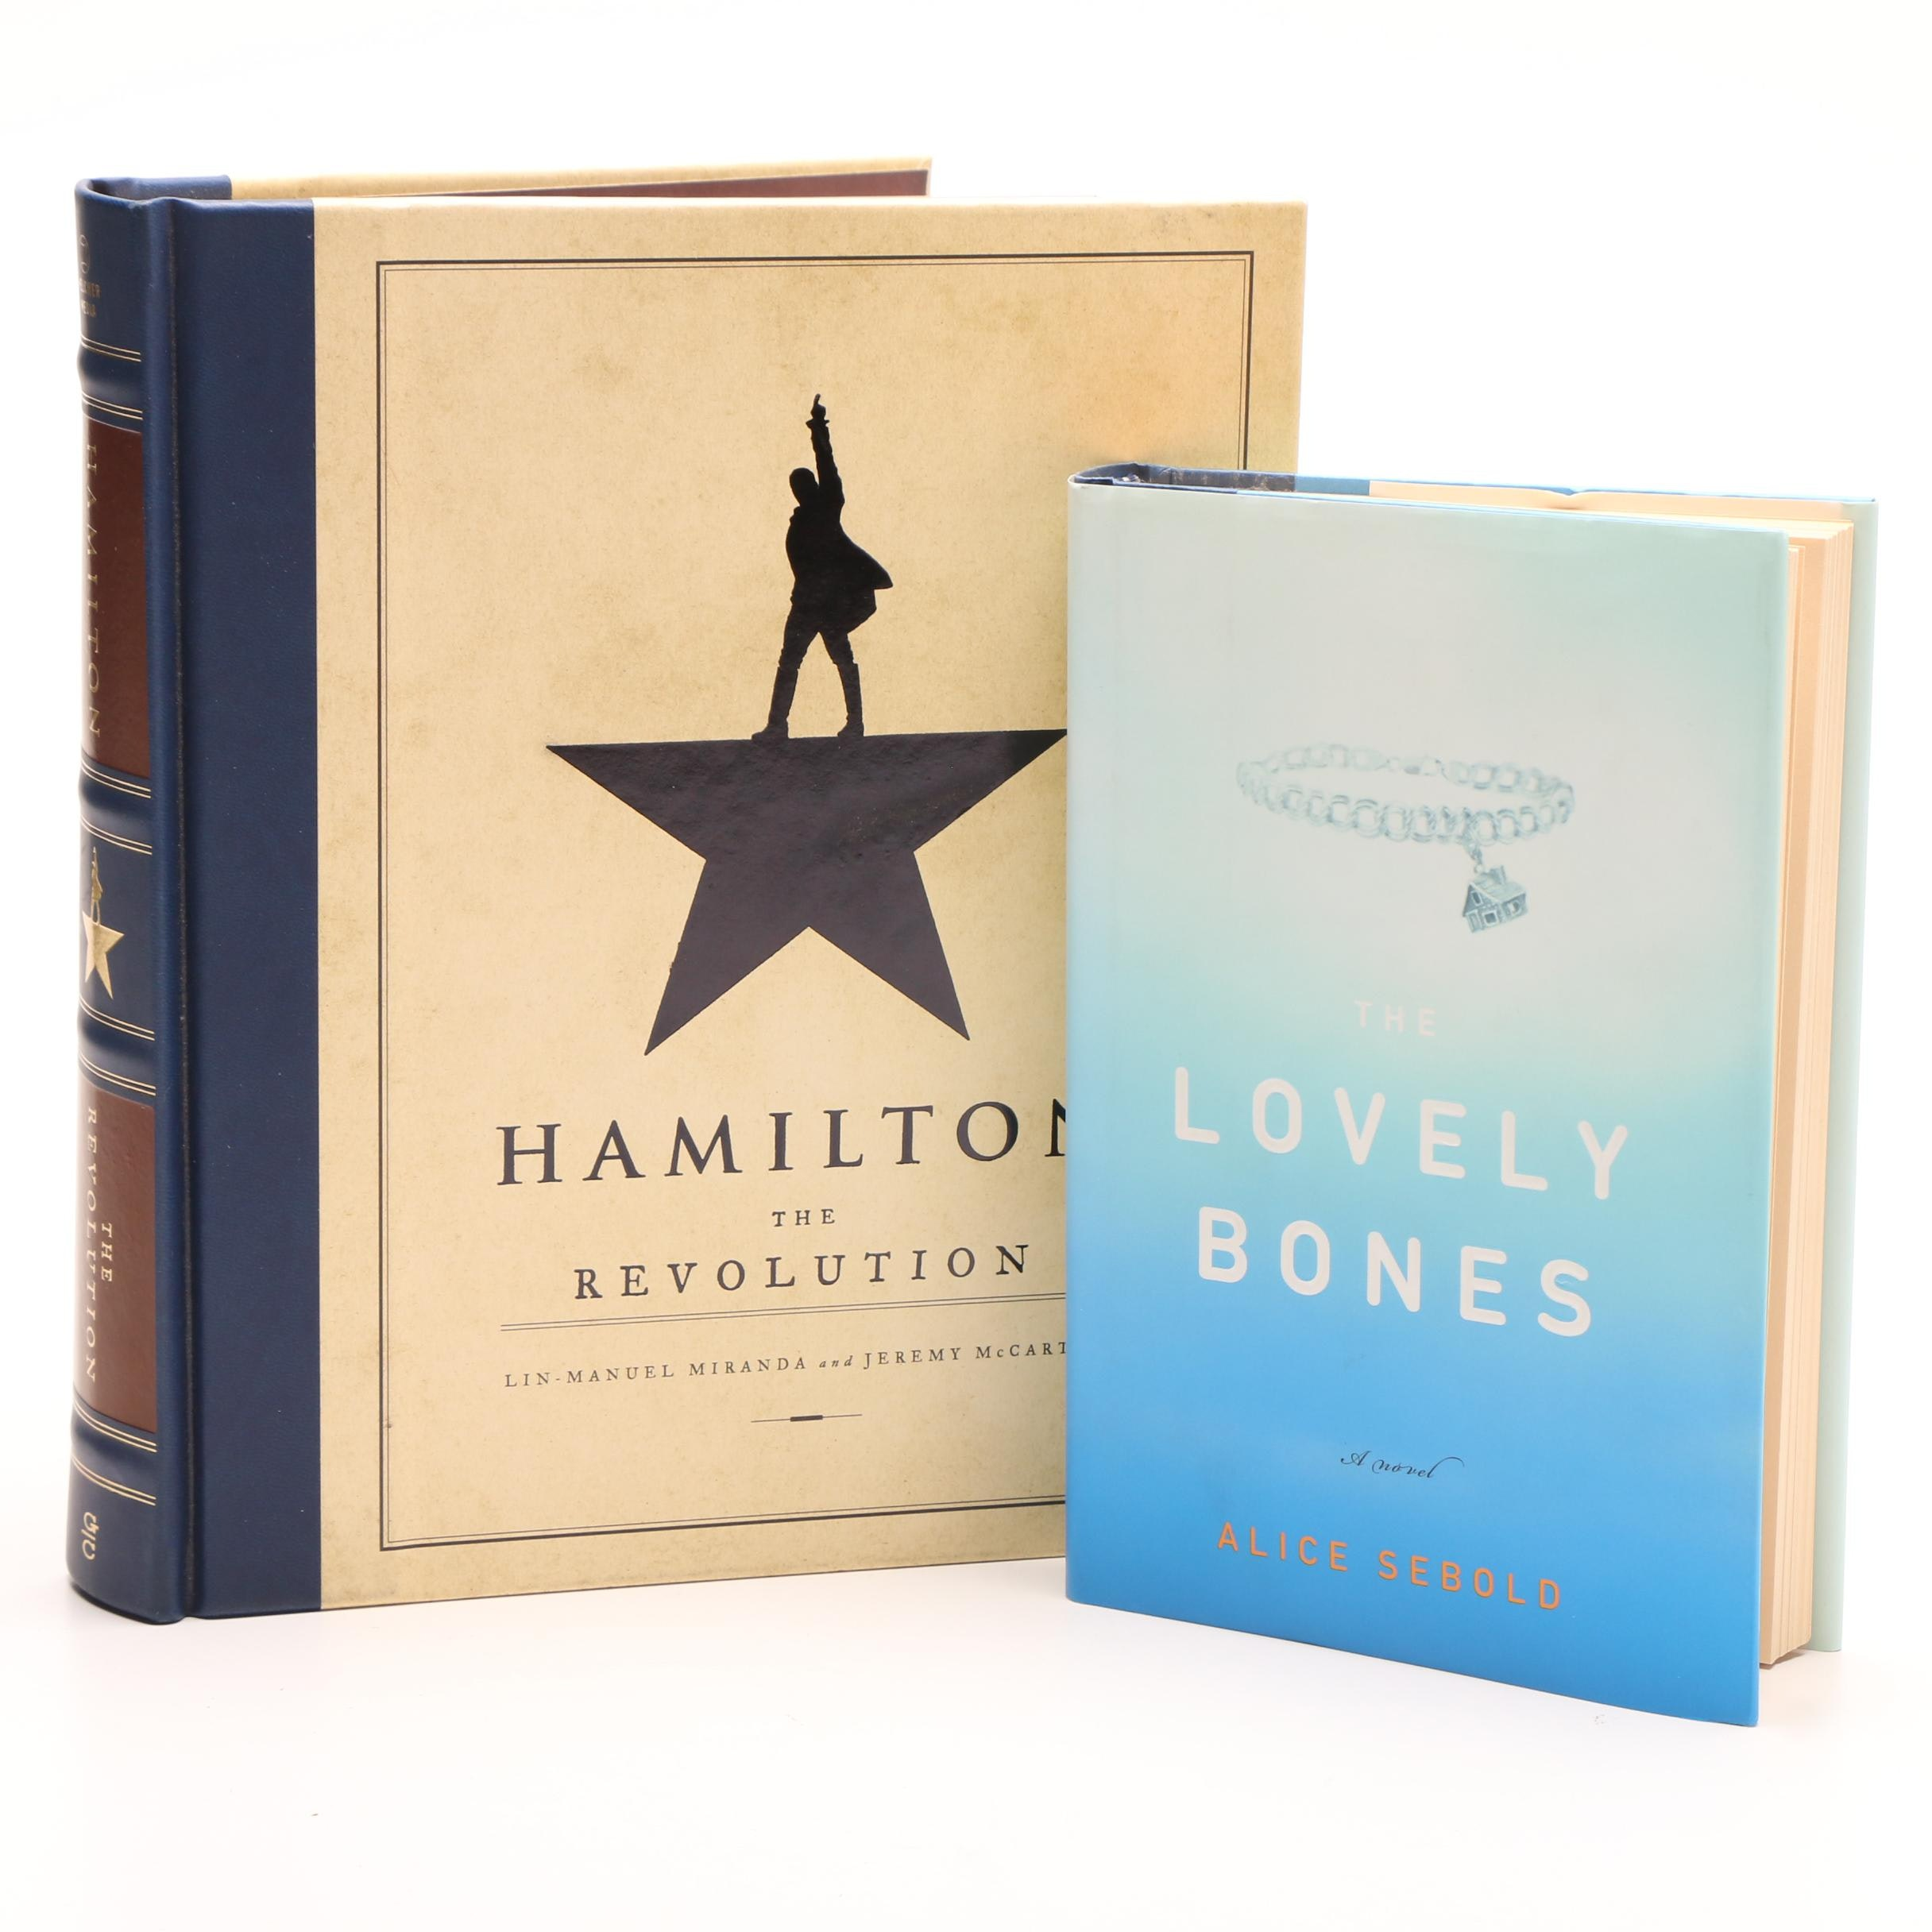 """The Lovely Bones,"" and ""Hamilton The Revolution"" Hardbound Books"